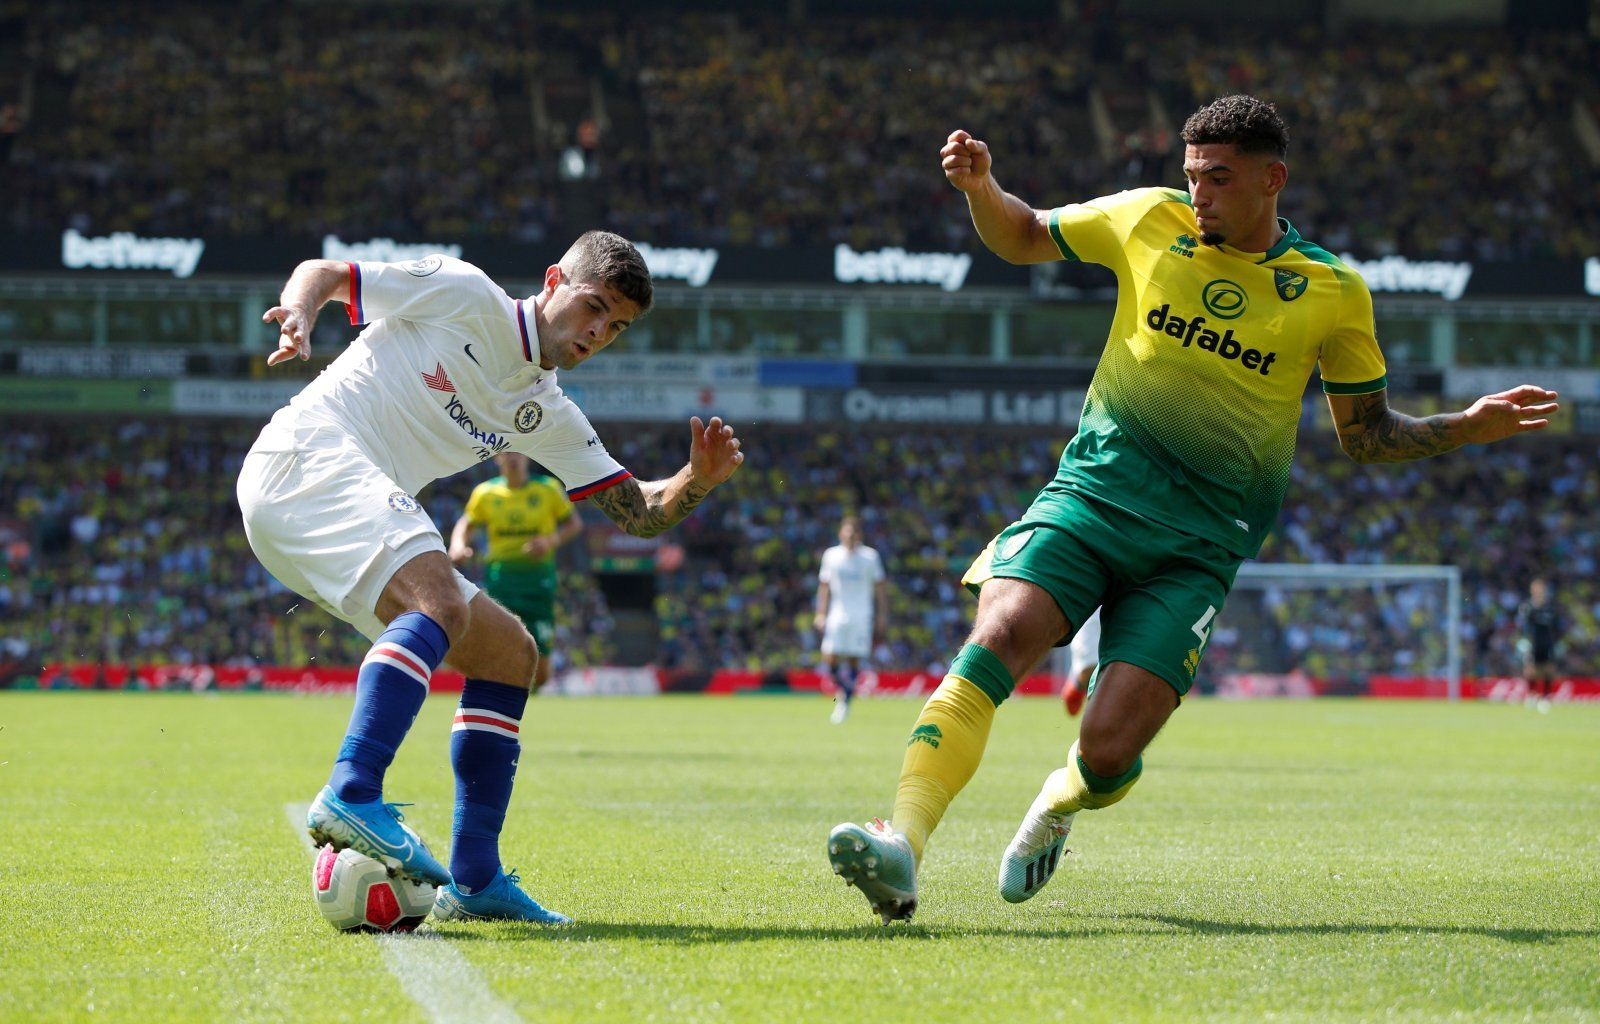 Norwich City: 21 y/o impresses against Chelsea in titanic tussle as Carrow Road